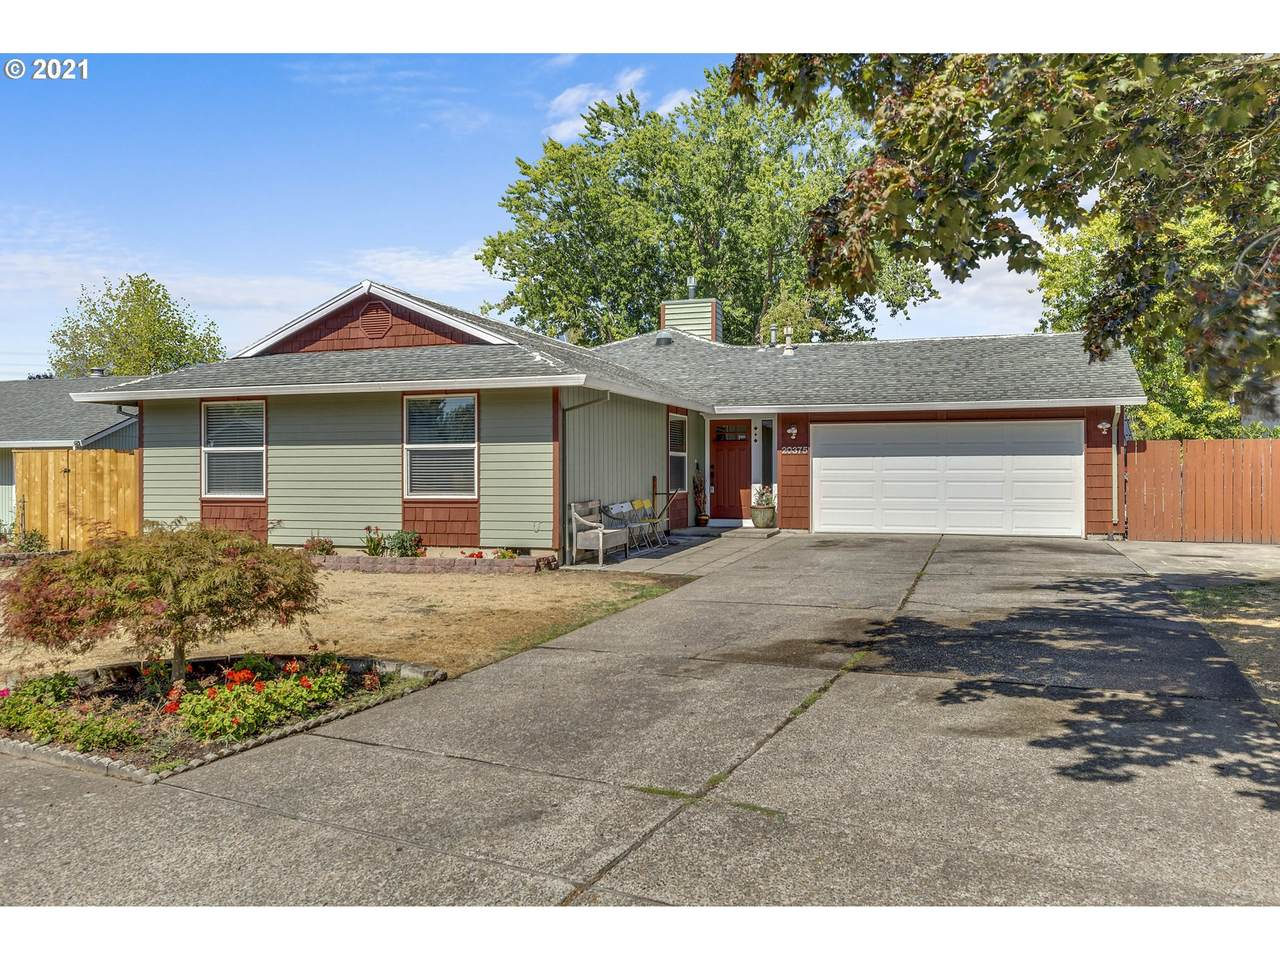 20375 Clarion St - Photo 1